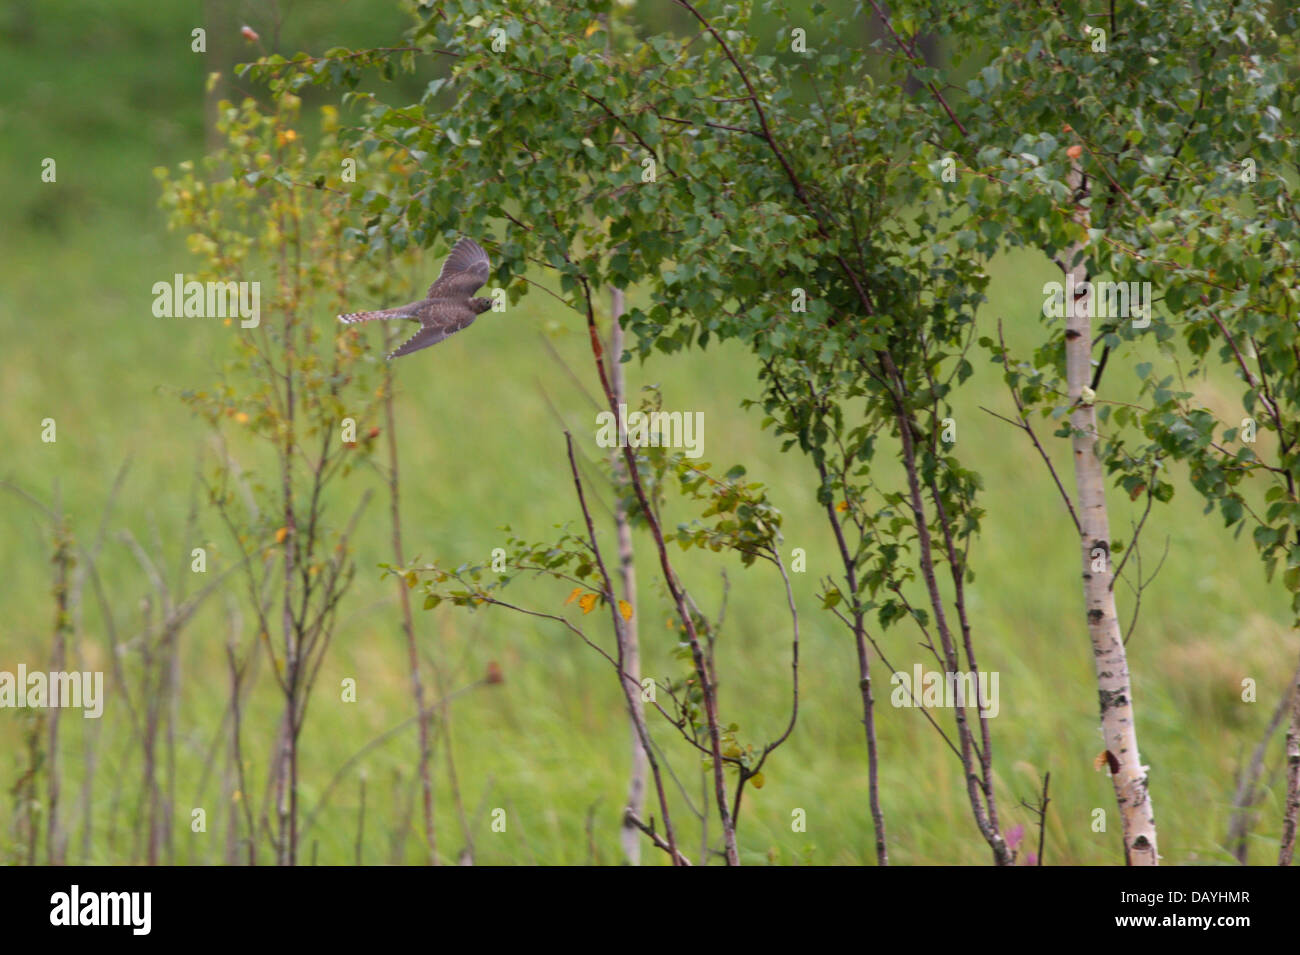 Common Cuckoo (Cuculus canorus) in flight. - Stock Image